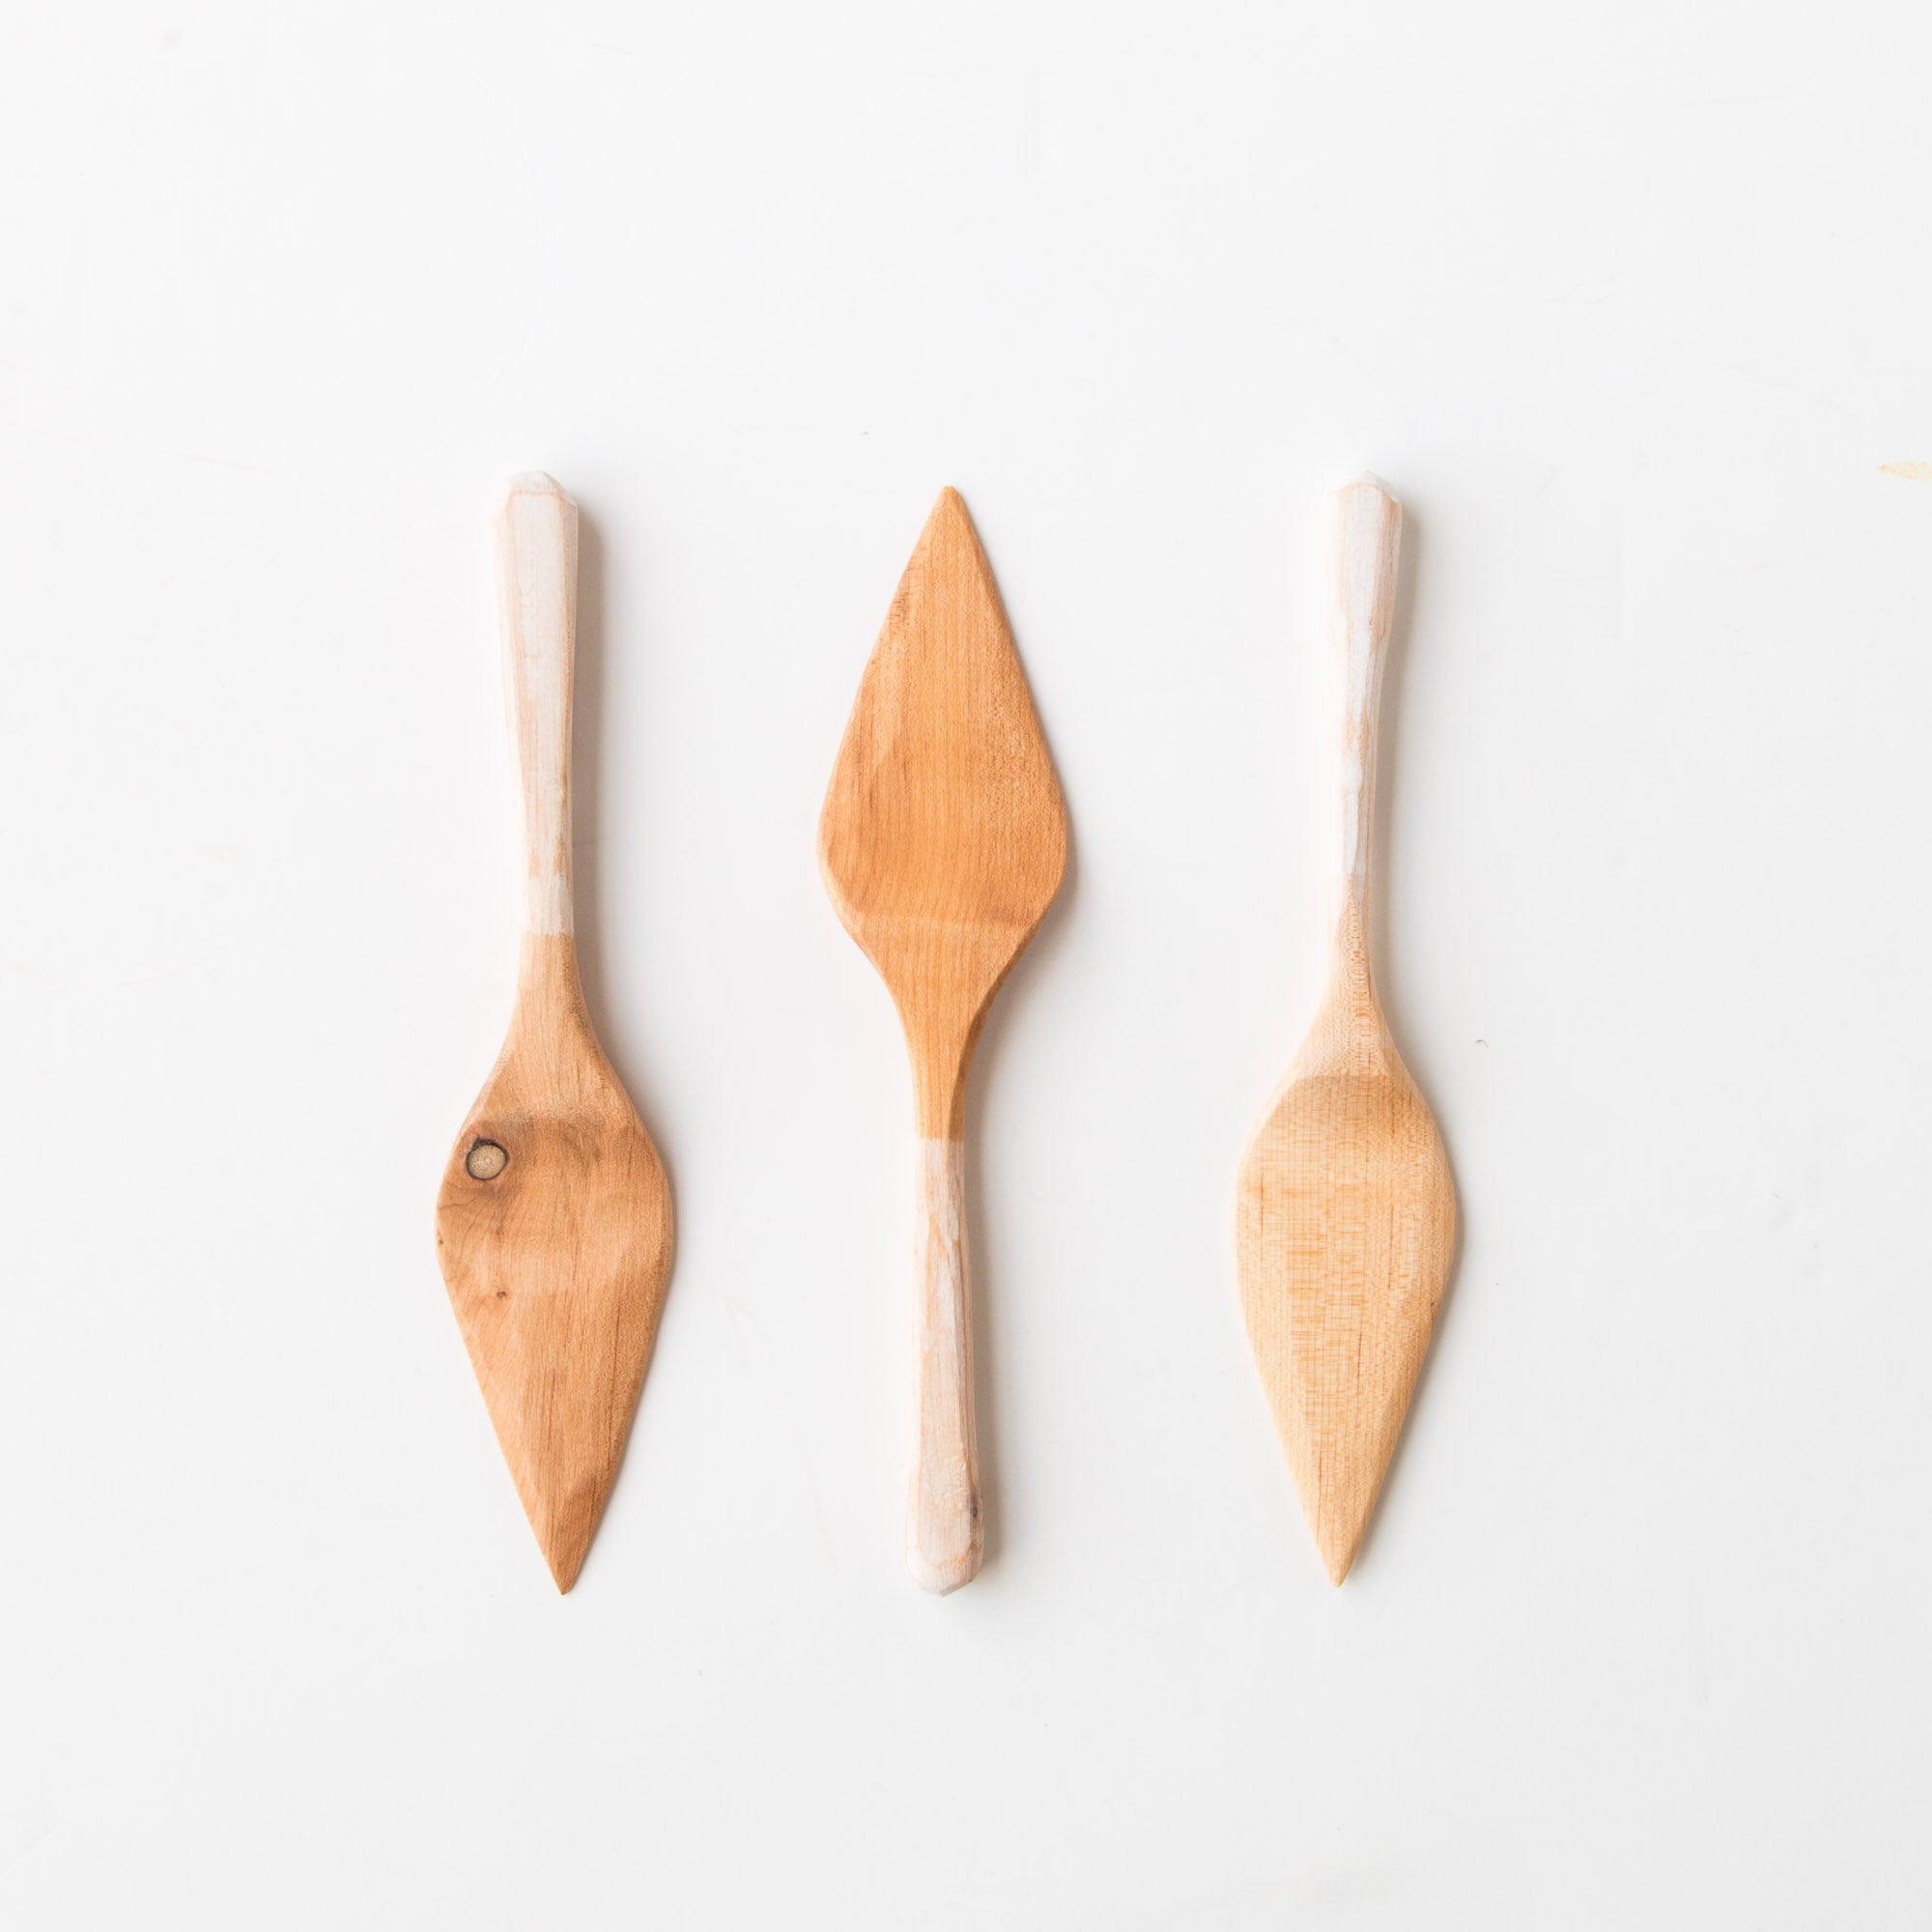 Hand Carved Pastry Spatulas in Recycled Maple - Sold by Chic & Basta